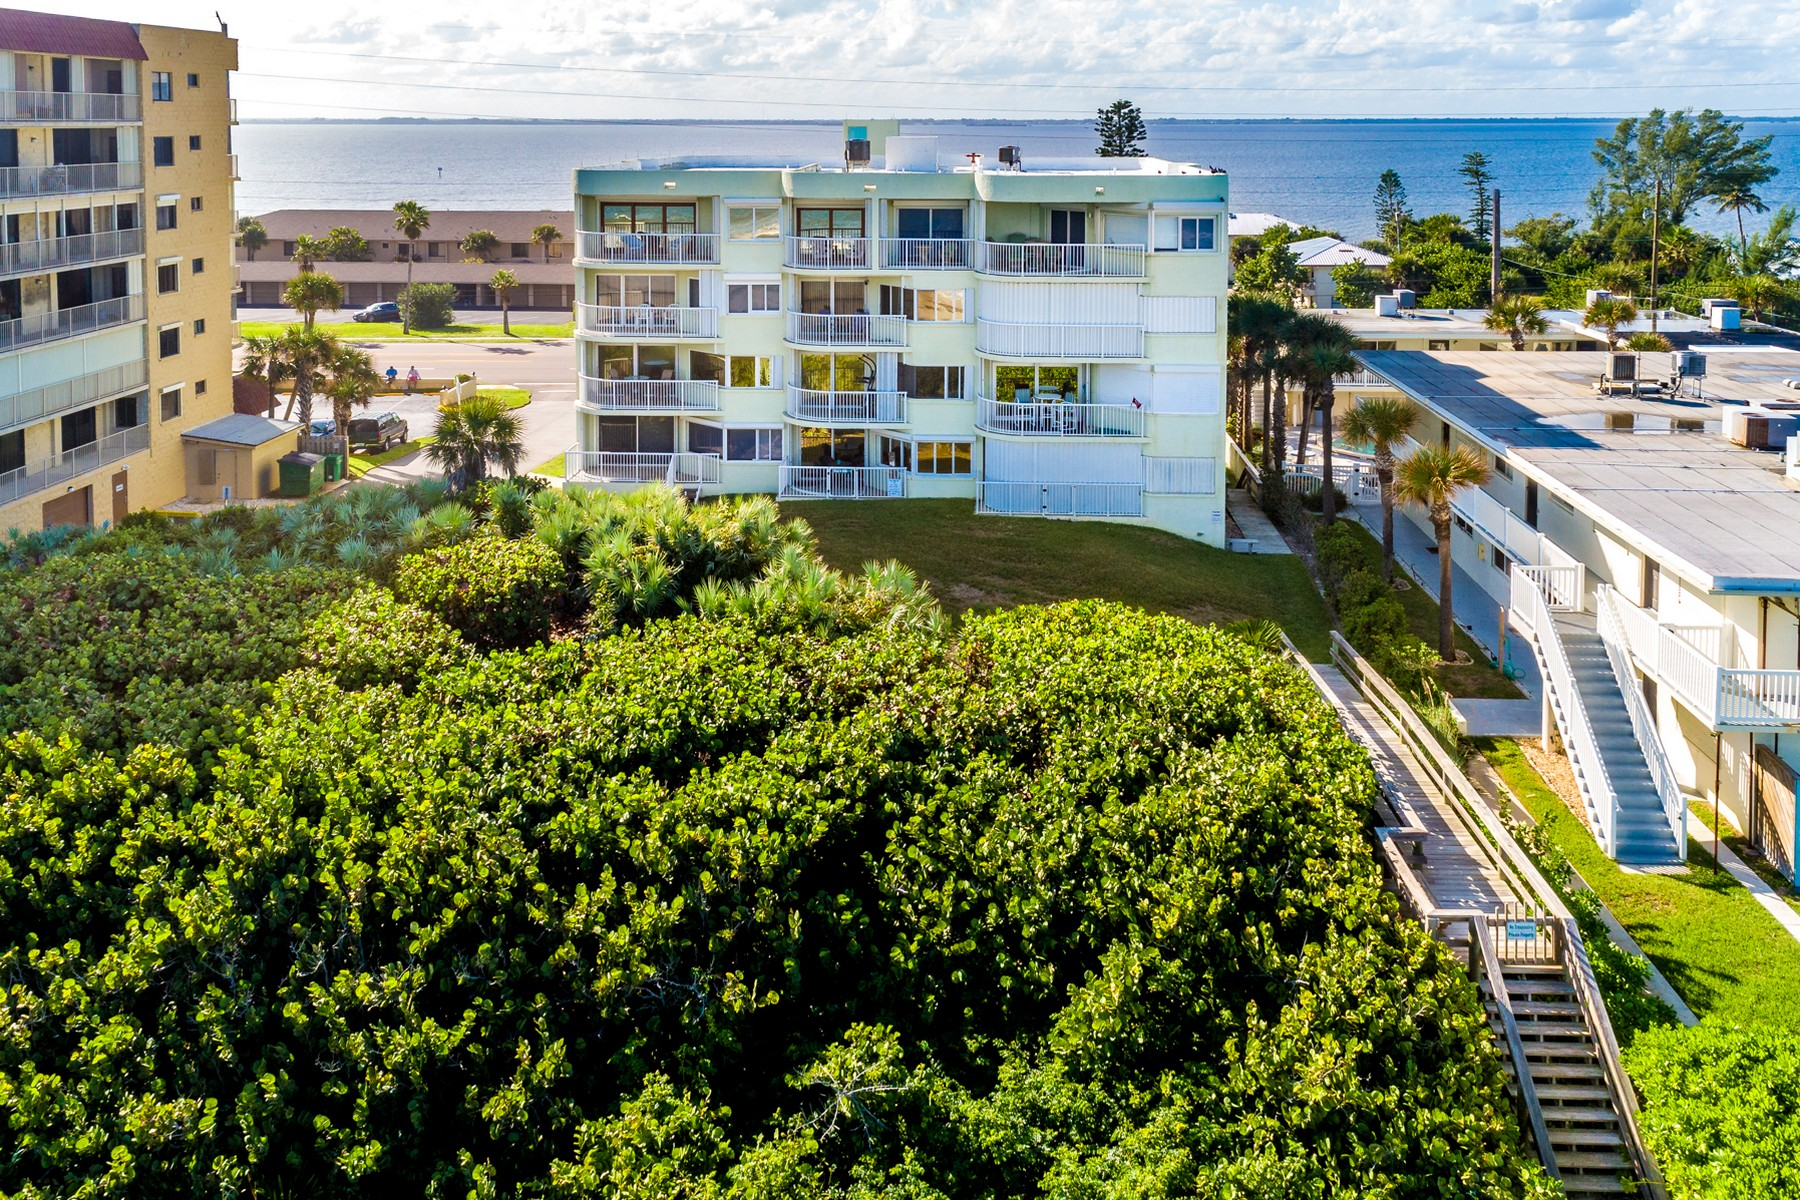 Additional photo for property listing at Casa Playa Condo 3031 South Atlantic Avenue #303 Cocoa Beach, Florida 32931 United States